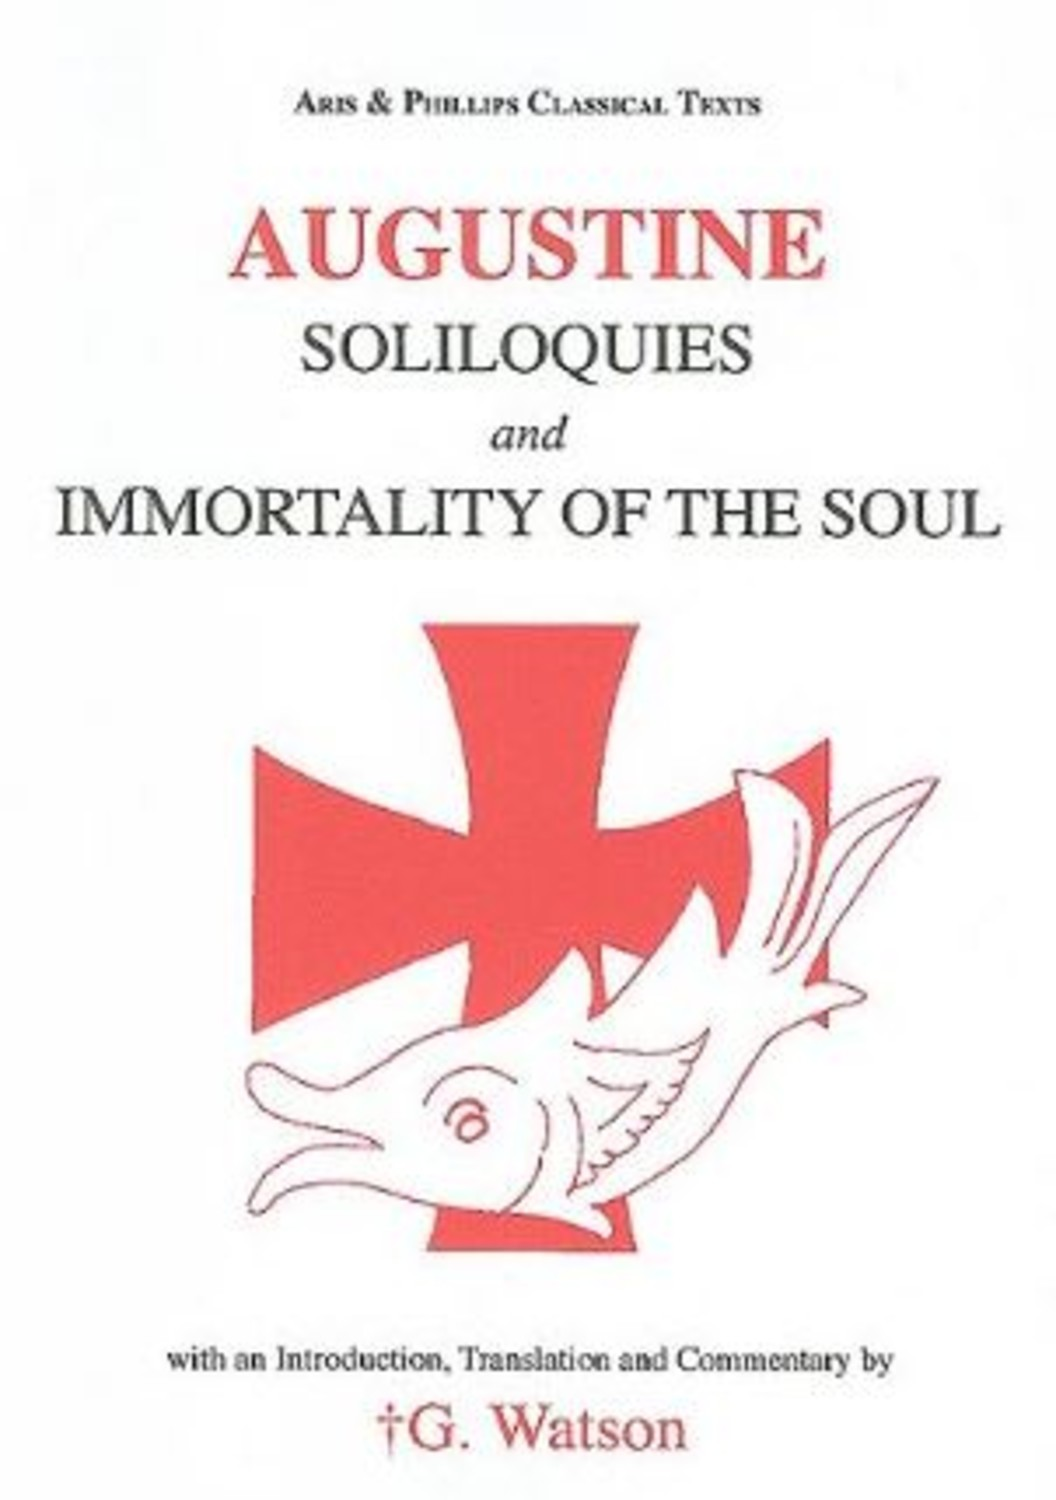 Augustine: Soliloquies and the Immortality of the Soul